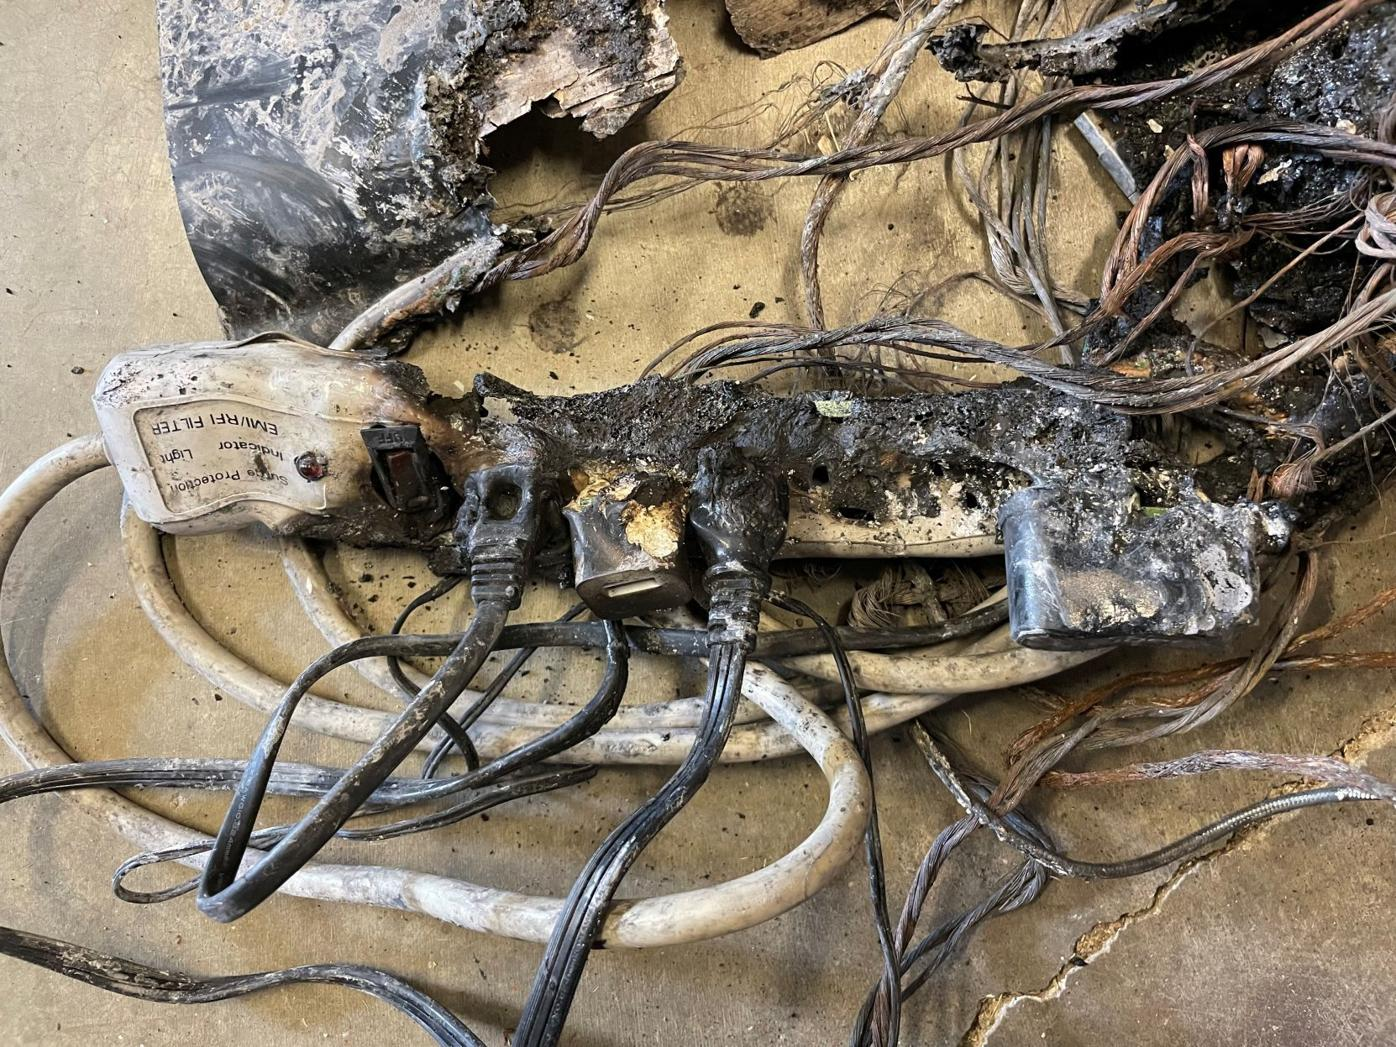 Office fire prompts reminder of electrical, personal safety